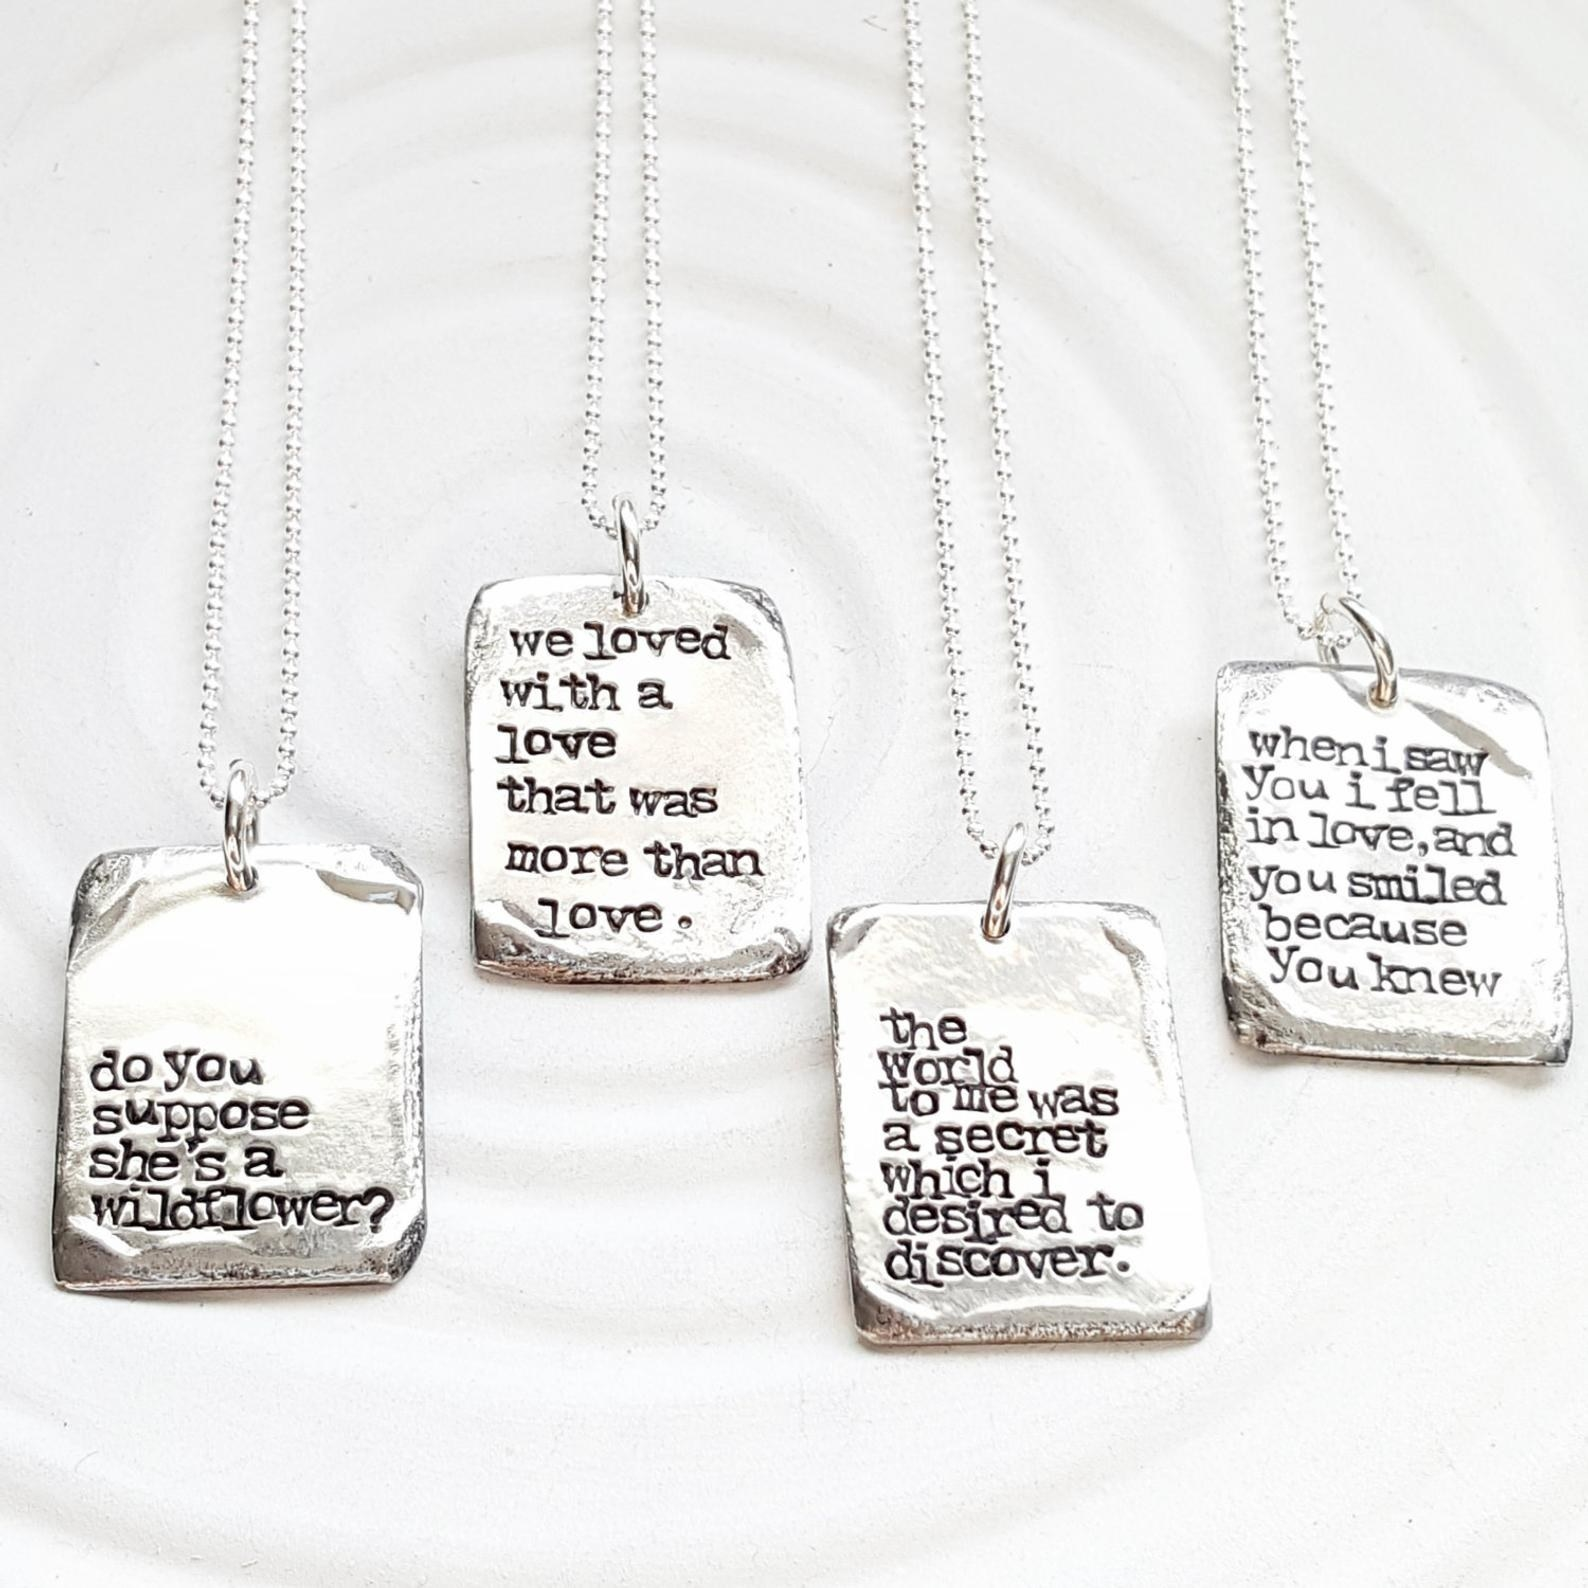 Four pewter pendants with different literary quotes stamped on them